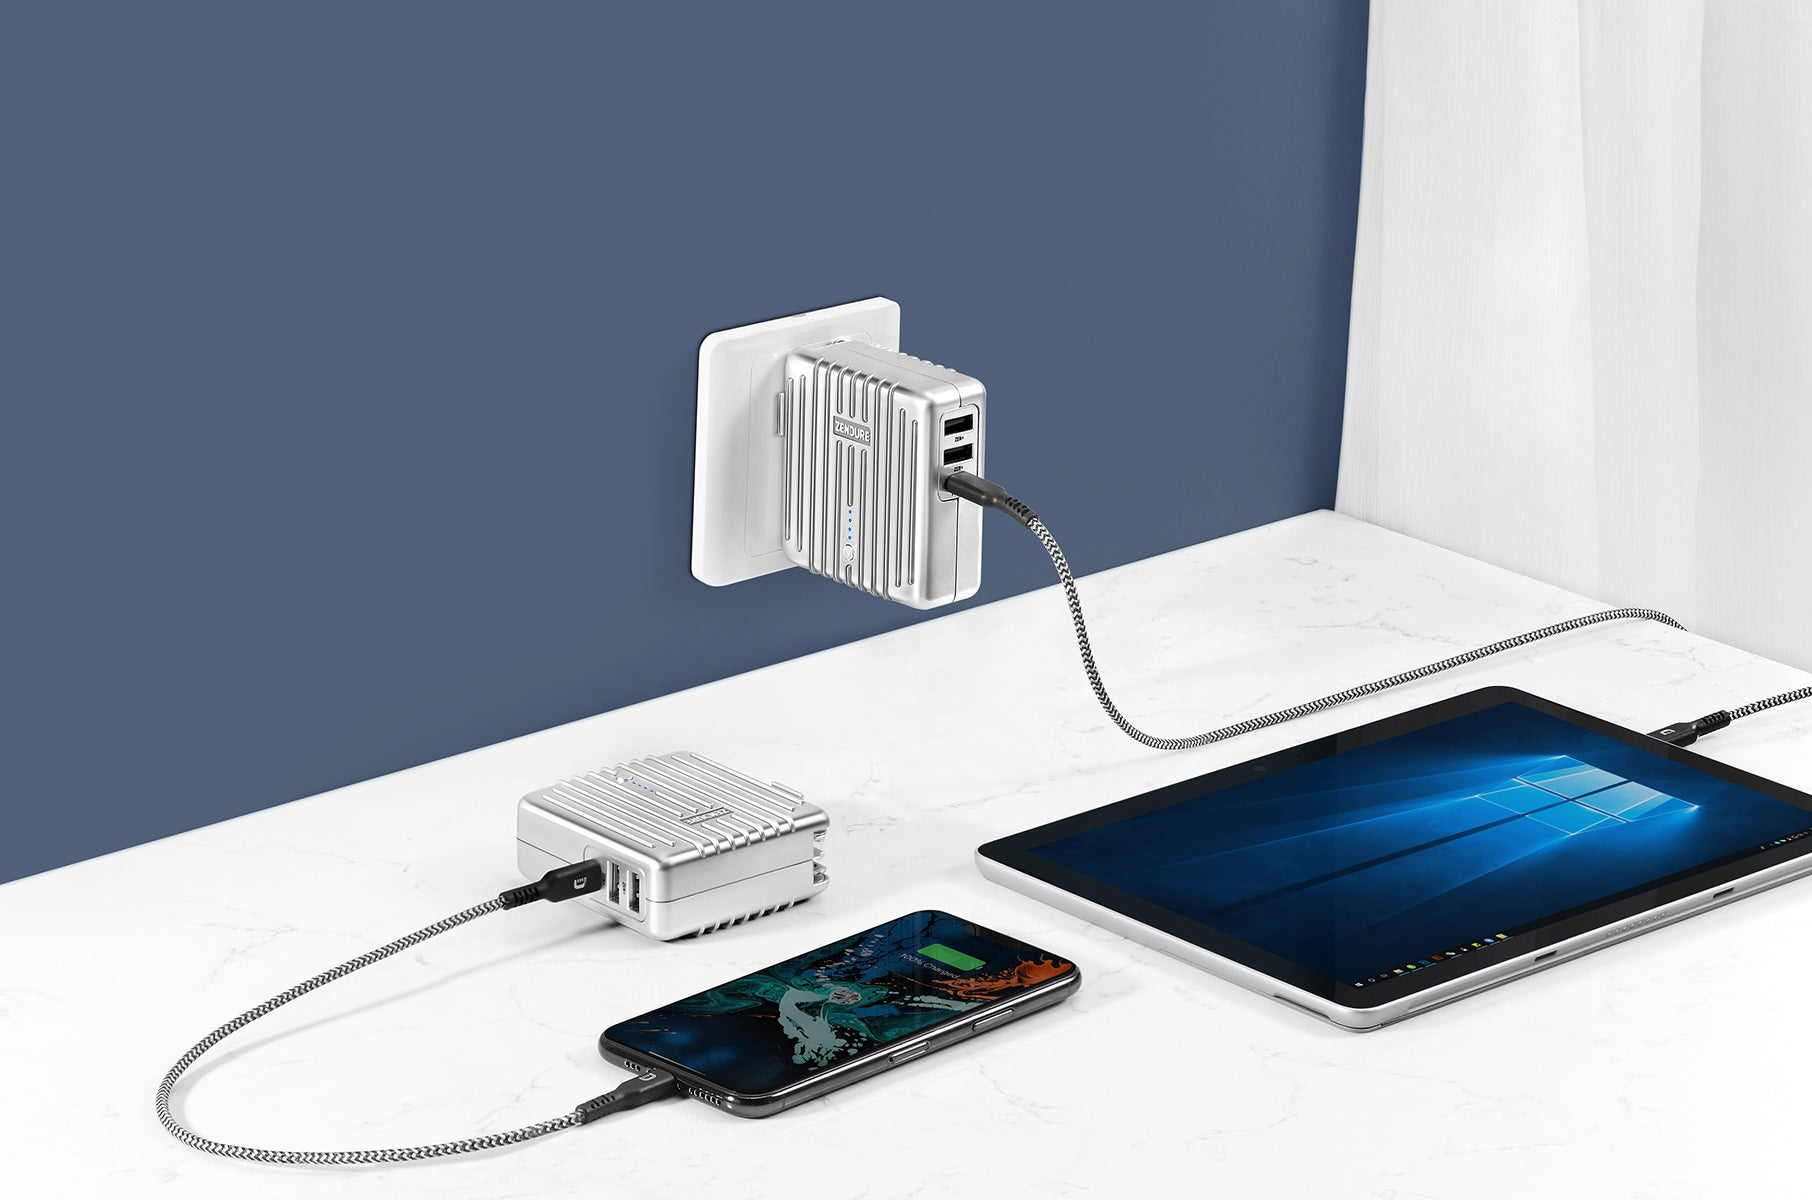 PD wall charger + Portable charger = MIX